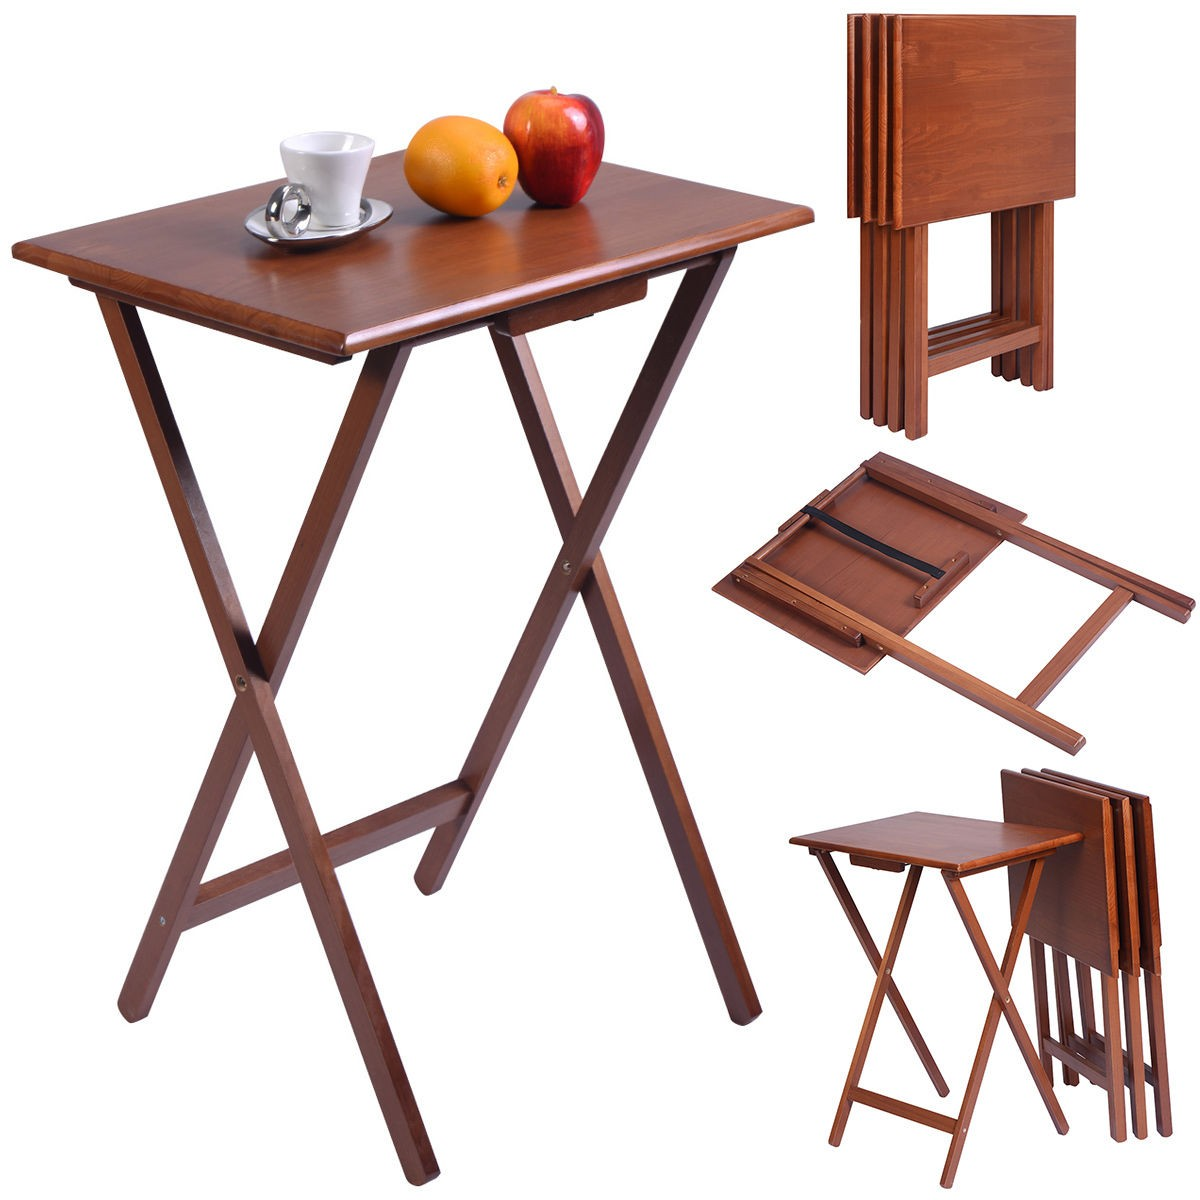 Old Charm Coffee Tables Ebay: New Set Of 4 Portable Wood TV Table Folding Tray Desk